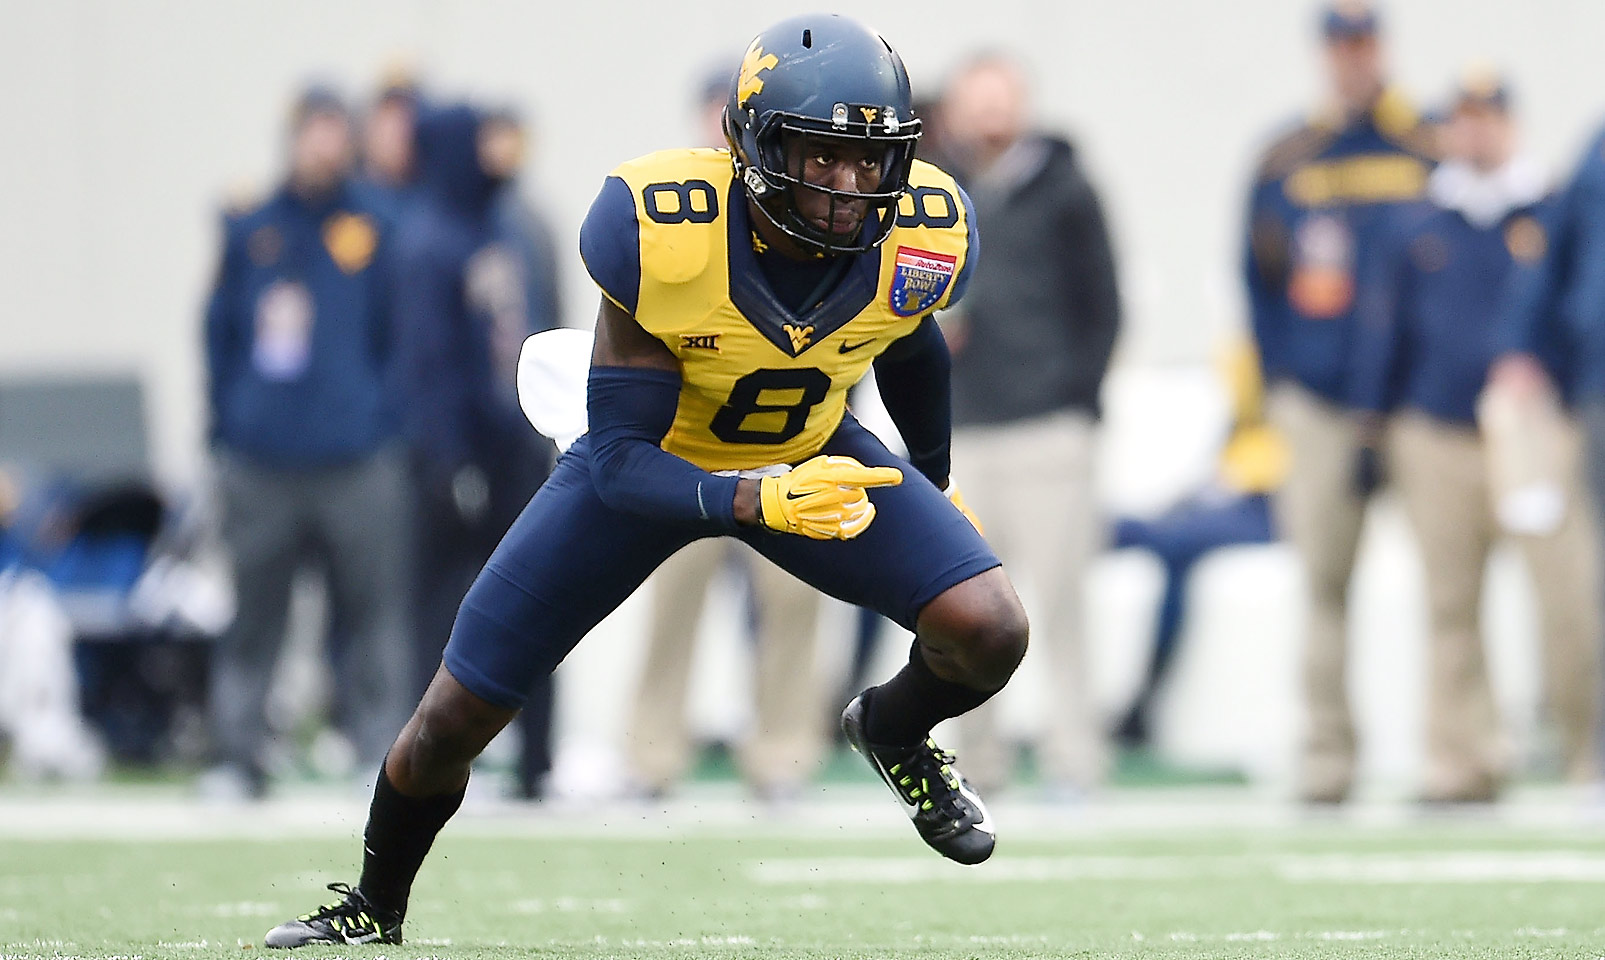 Joseph could have entered the NFL draft but chose to come back to West Virginia for his senior season. He has been one of the Mountaineers' best defenders since he stepped on the field as a freshman, and he'll bring leadership in addition to immense talent to their secondary.